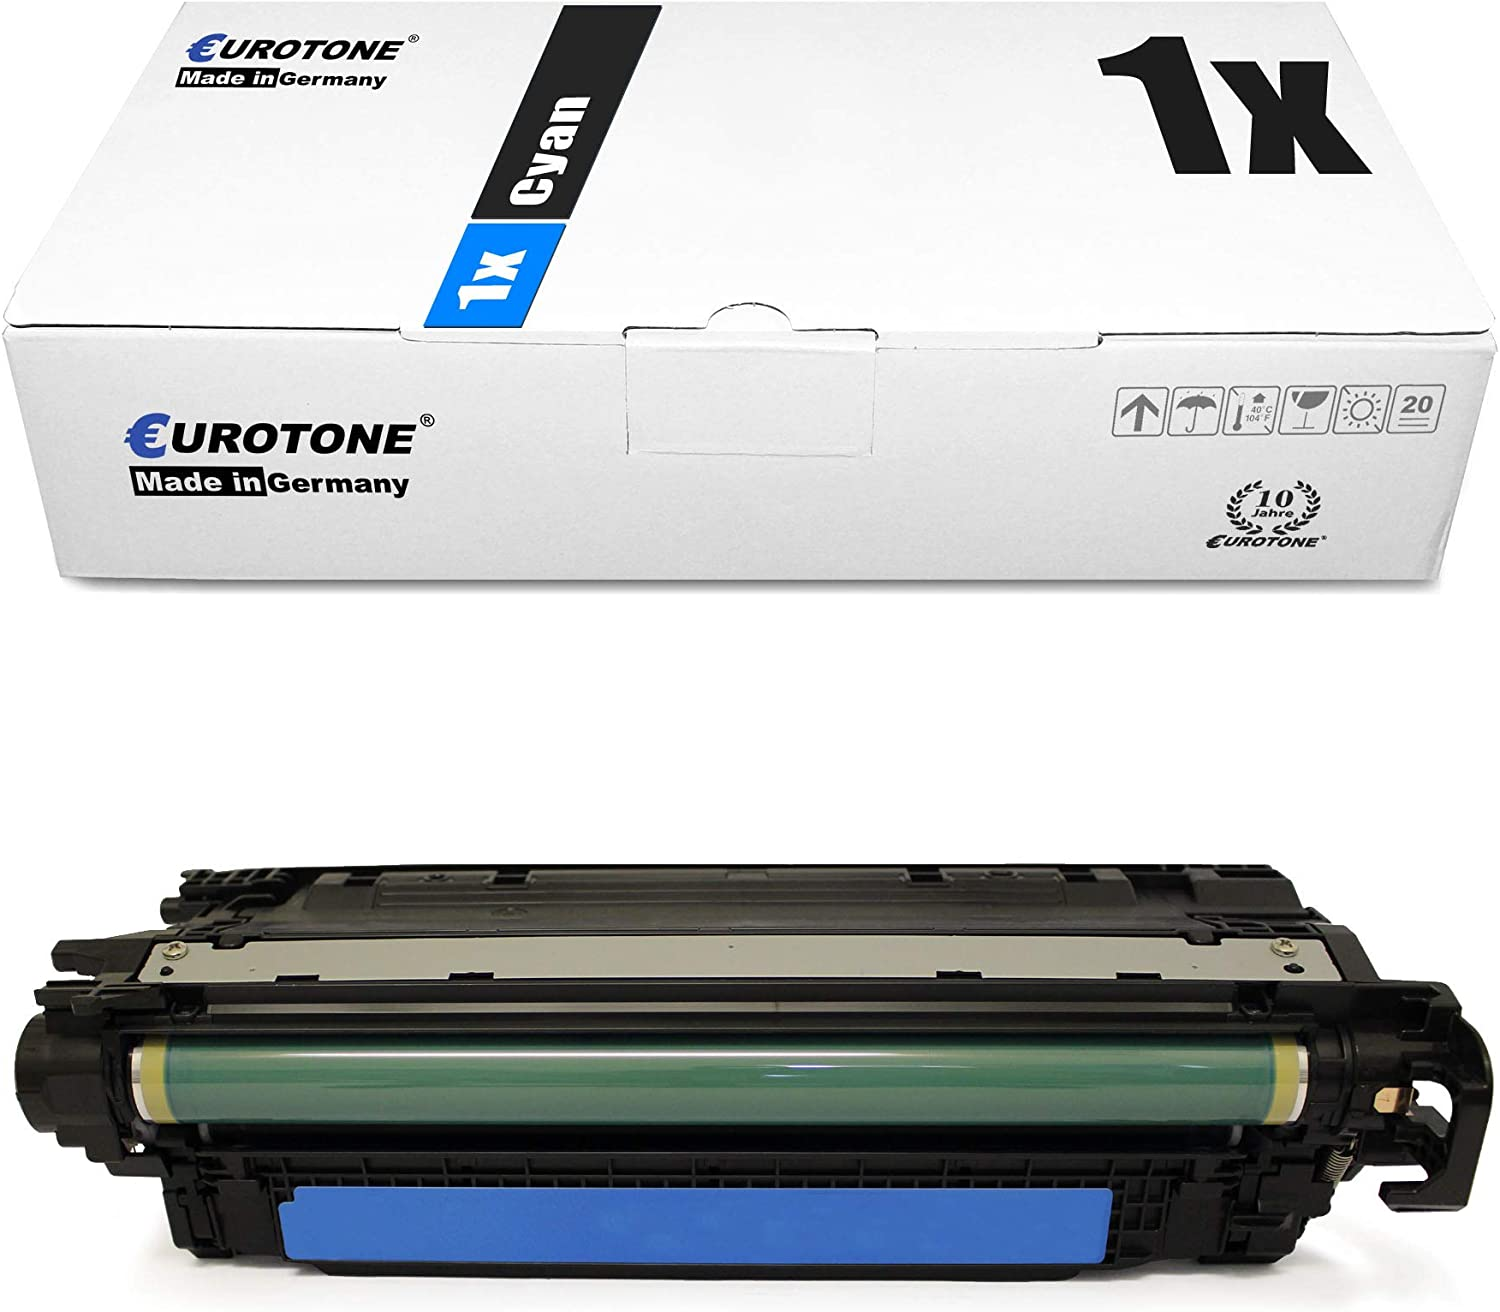 5X Eurotone XXL Remanufactured Toner for HP Color Laserjet CP 4520 dn n Replaces CE260X-63A 648A 649X